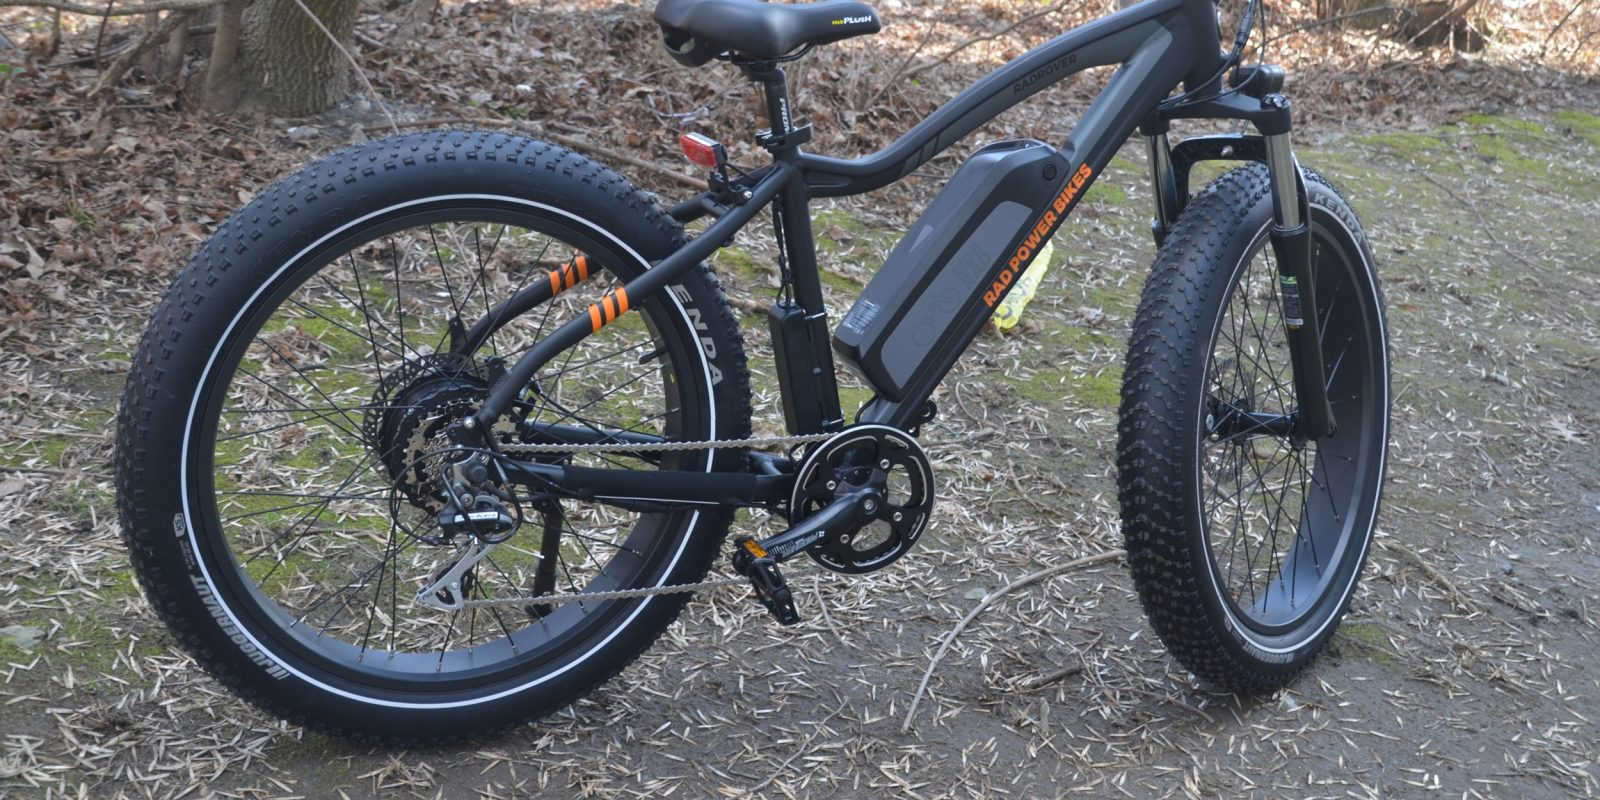 Radrover Fat Tire Electric Bicycle The Complete Review